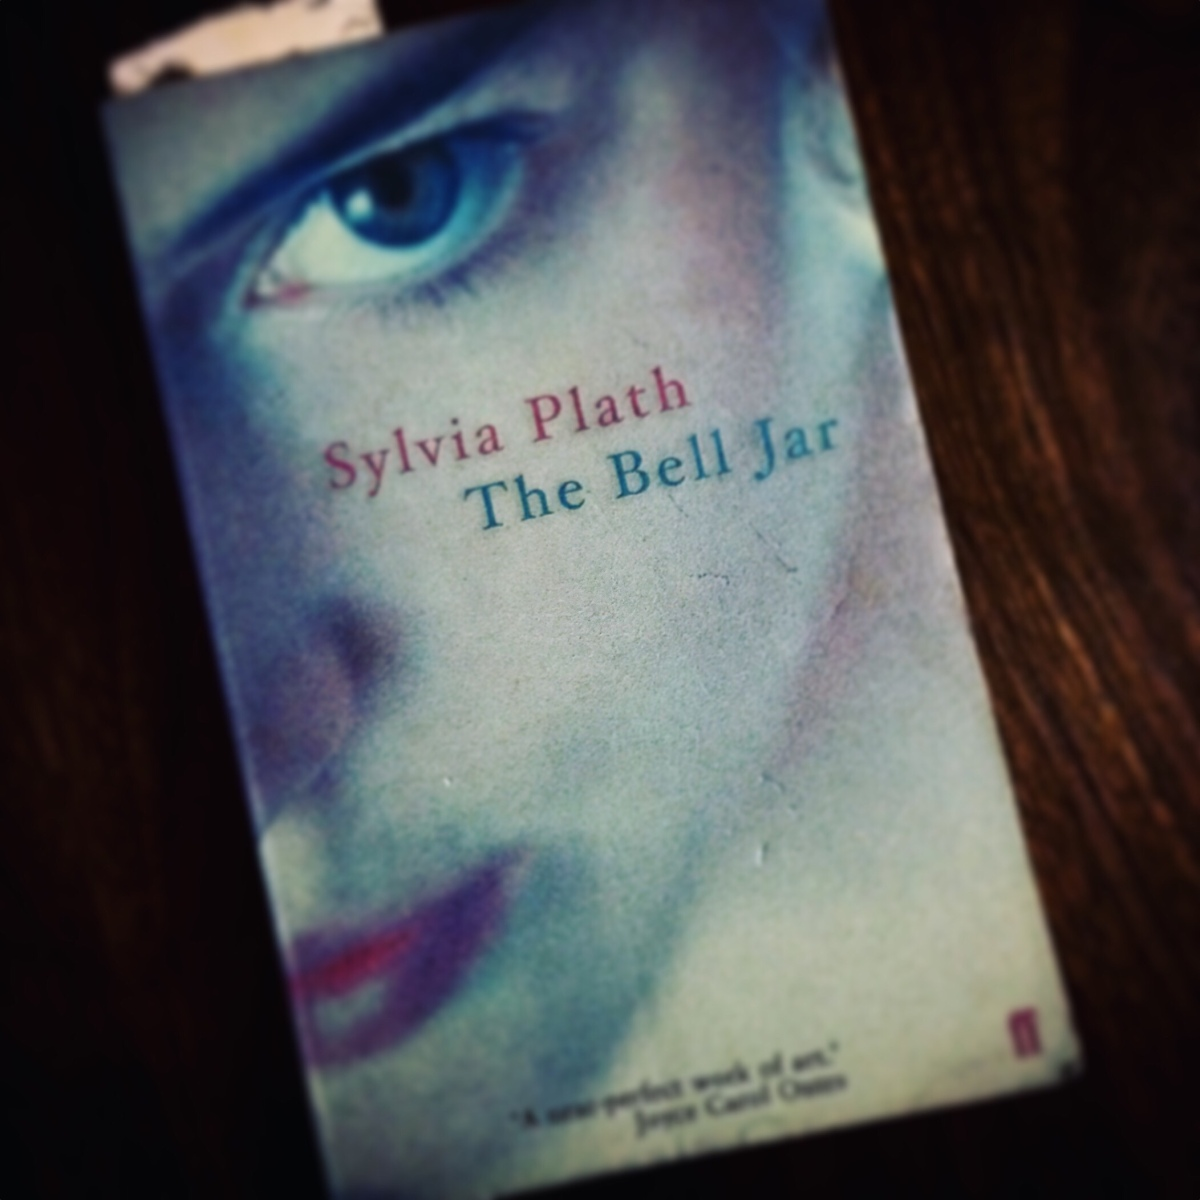 Book of the Week: The Bell Jar by Sylvia Plath